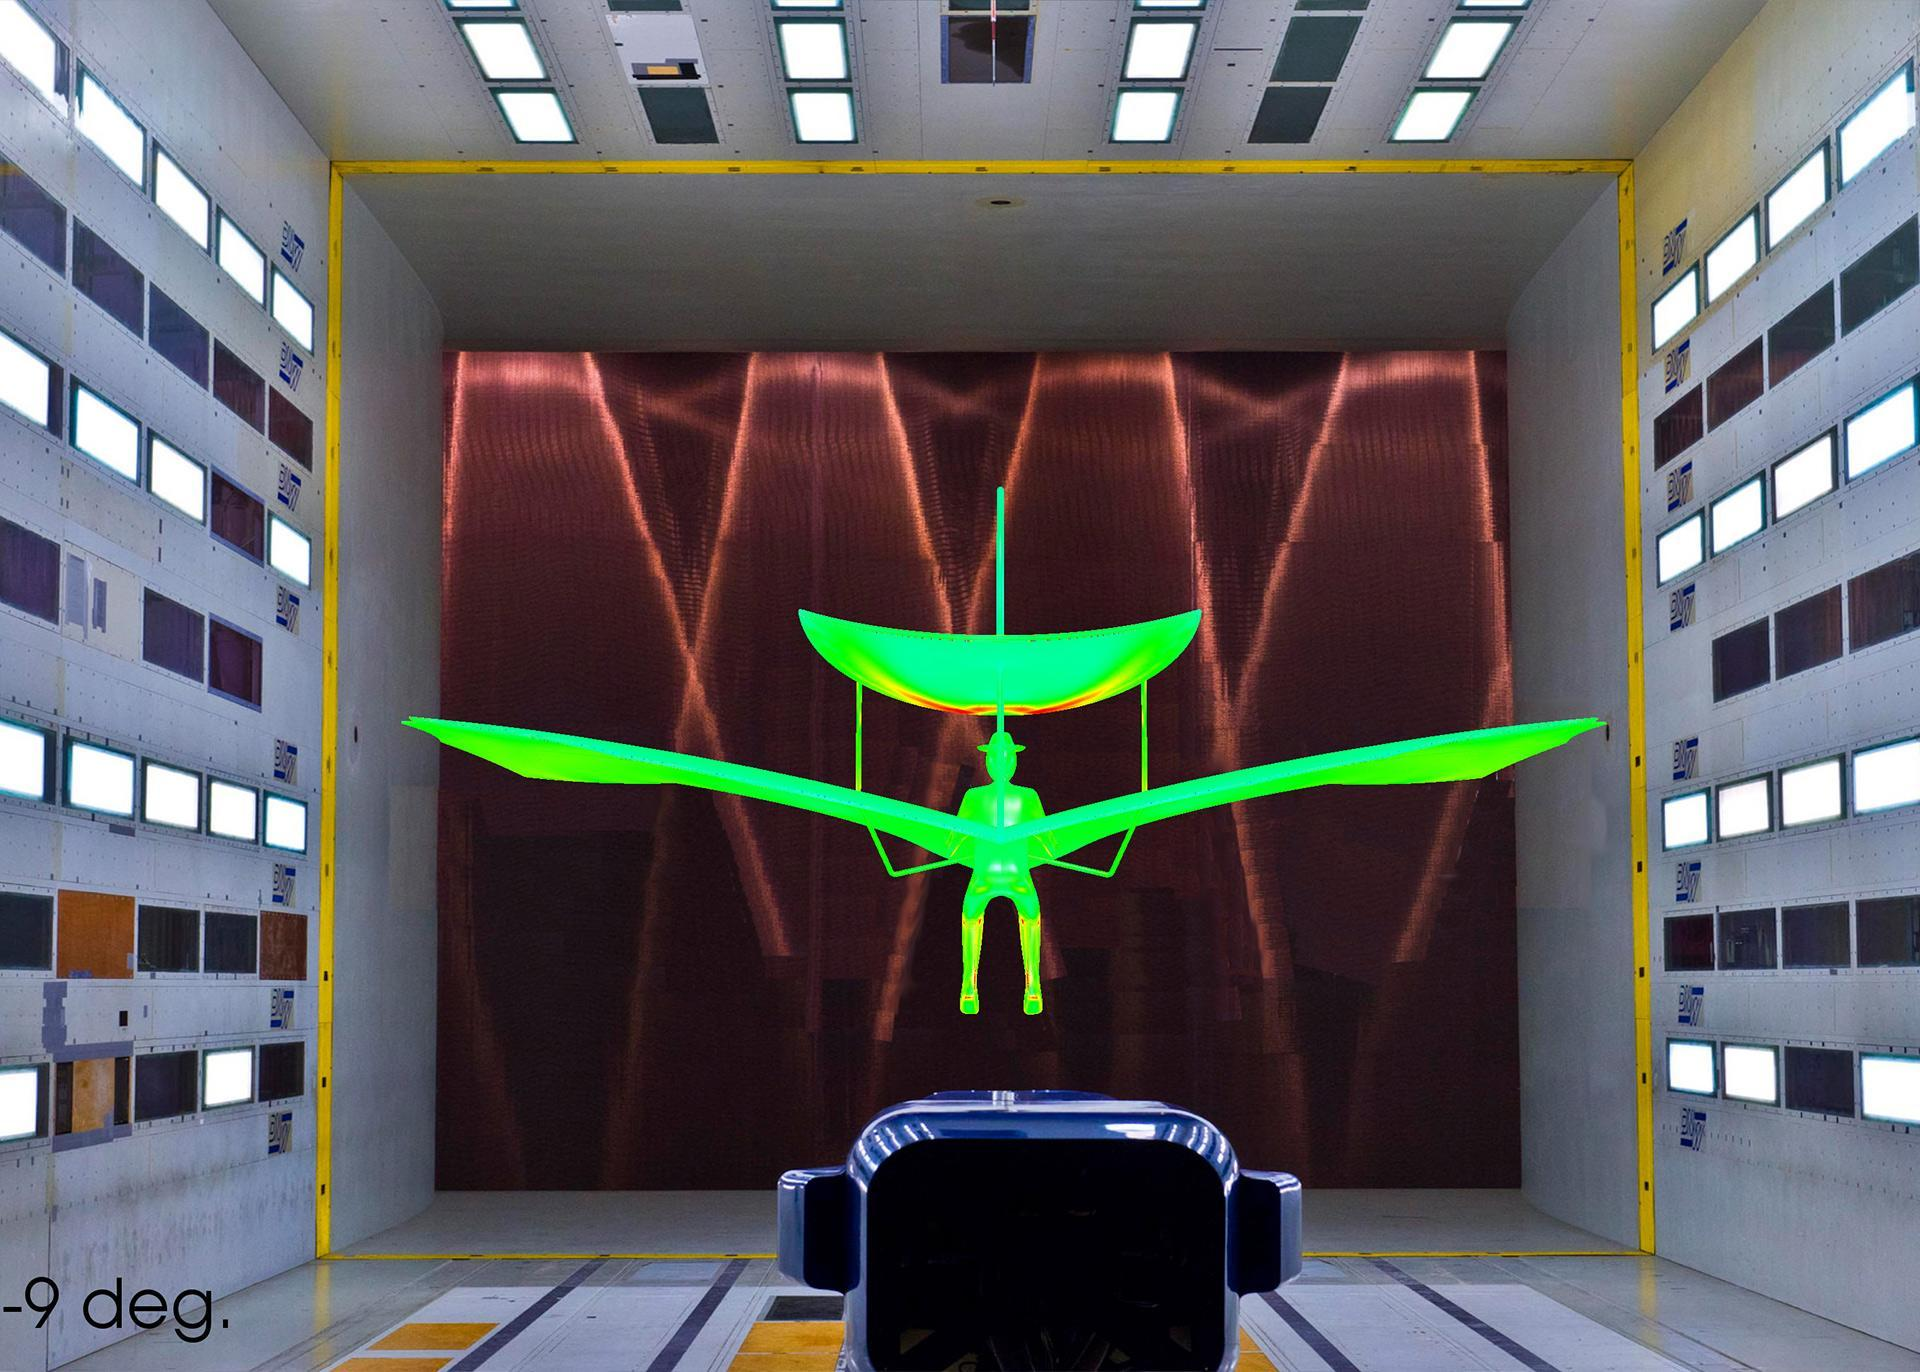 Simulation of Lilienthal's flight in the wind tunnel